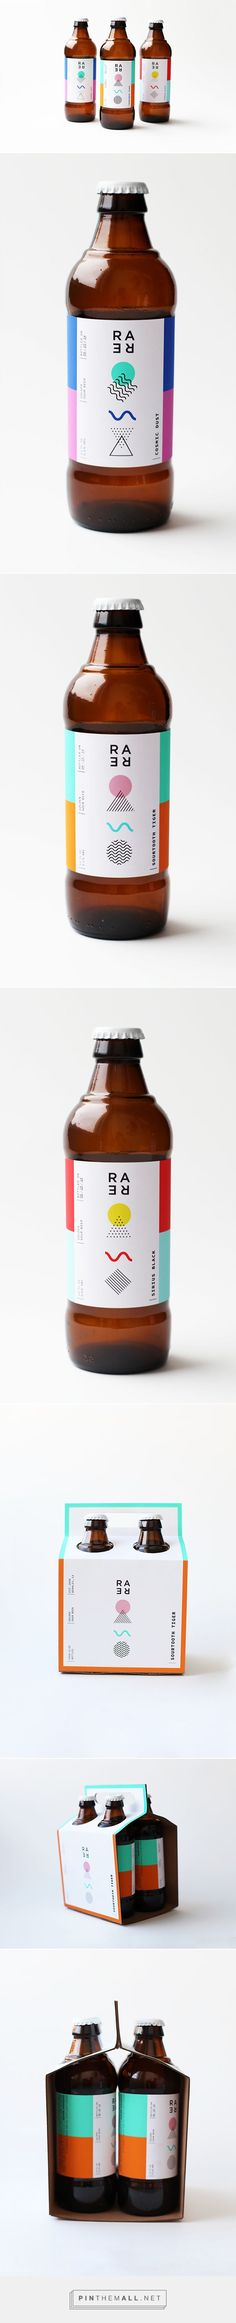 A very different take on beer packaging. It works well for a exclusively sour brewery like Rare Barrel. ///// Rare Barrel - A Sour Beer Co. by Mackenzie Freemire on Behance Branding And Packaging, Beverage Packaging, Bottle Packaging, Pretty Packaging, Ok Design, Label Design, Graphic Design Branding, Retro Design, Package Design